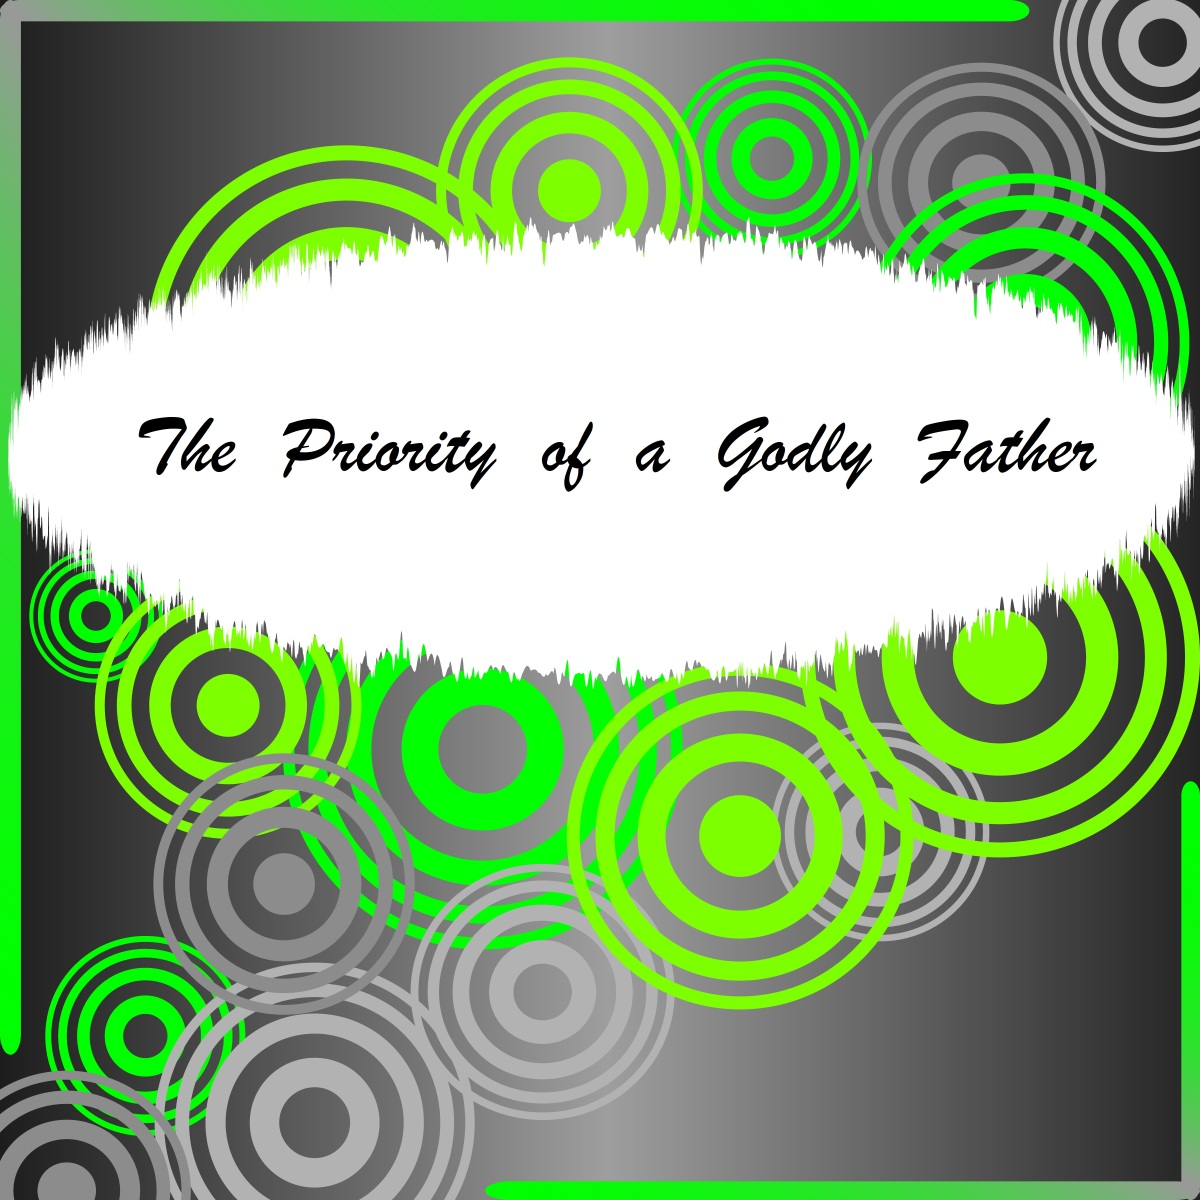 The Priority of a Godly Father